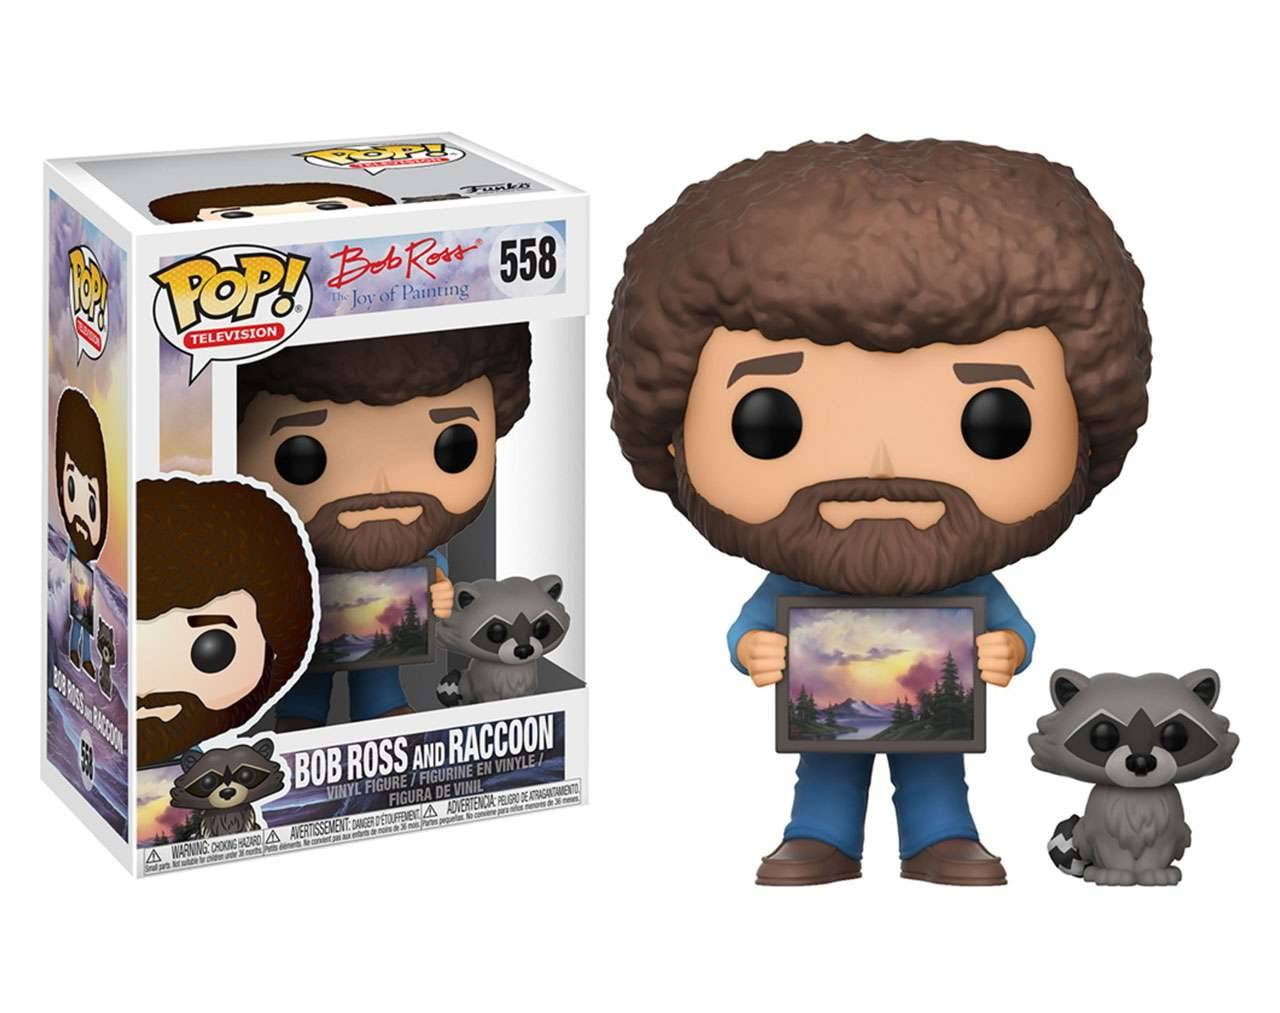 Bob Ross and Racoon Pop! Vinyl